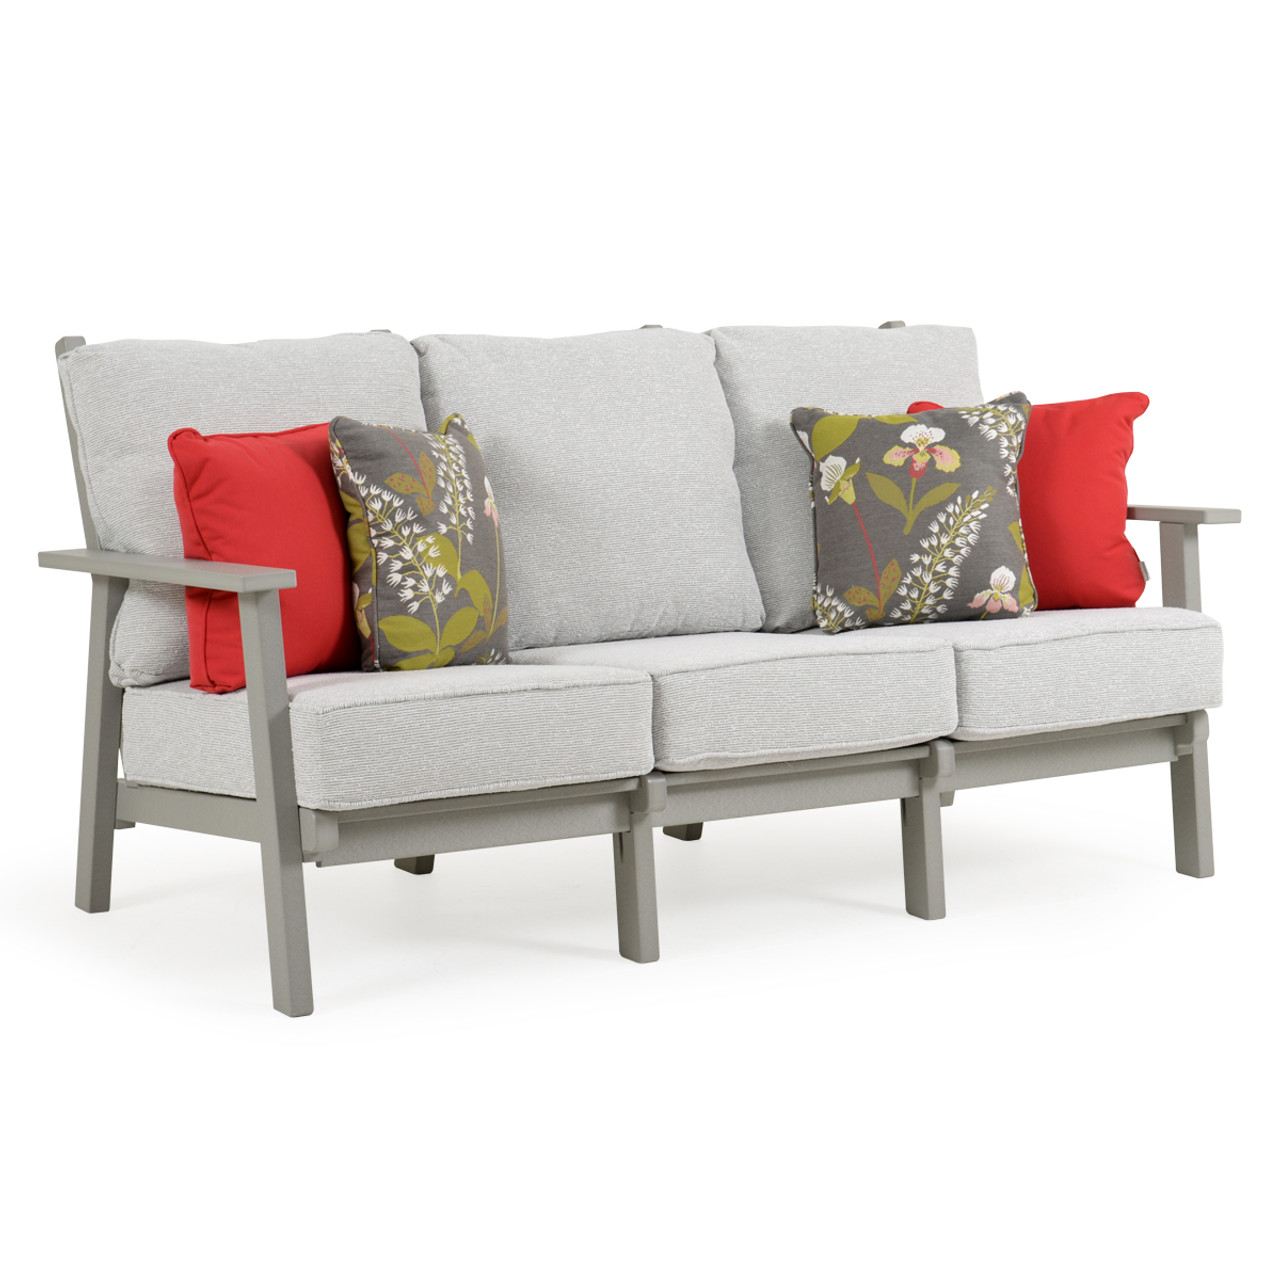 Outdoor Patio Couch Set, Marina Outdoor Poly Lumber High Back Sofa Leaders Casual Furniture